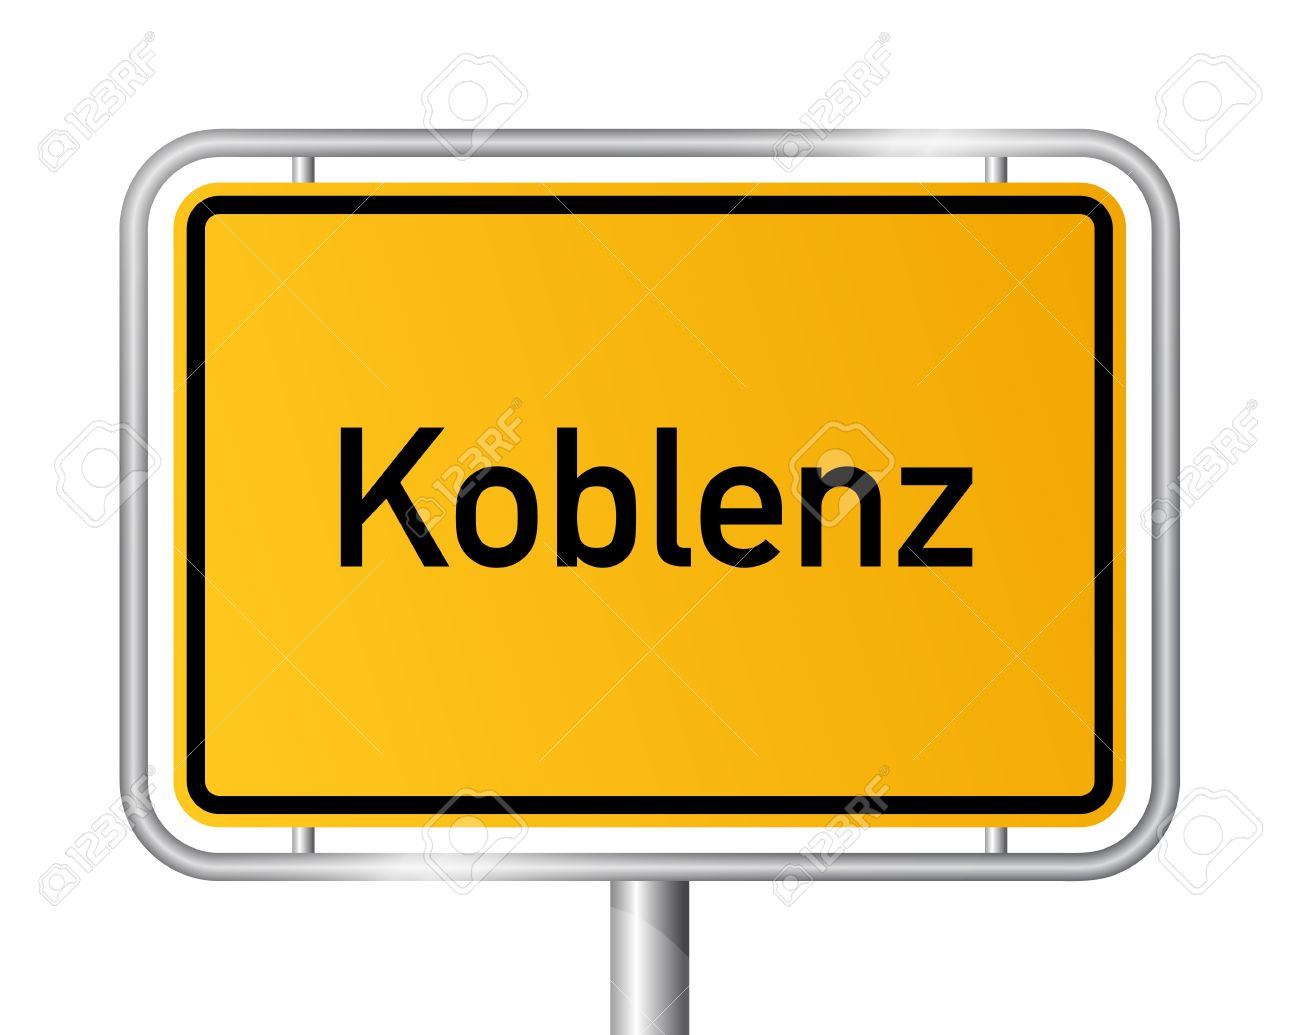 City Limit Sign Koblenz Against White Background.